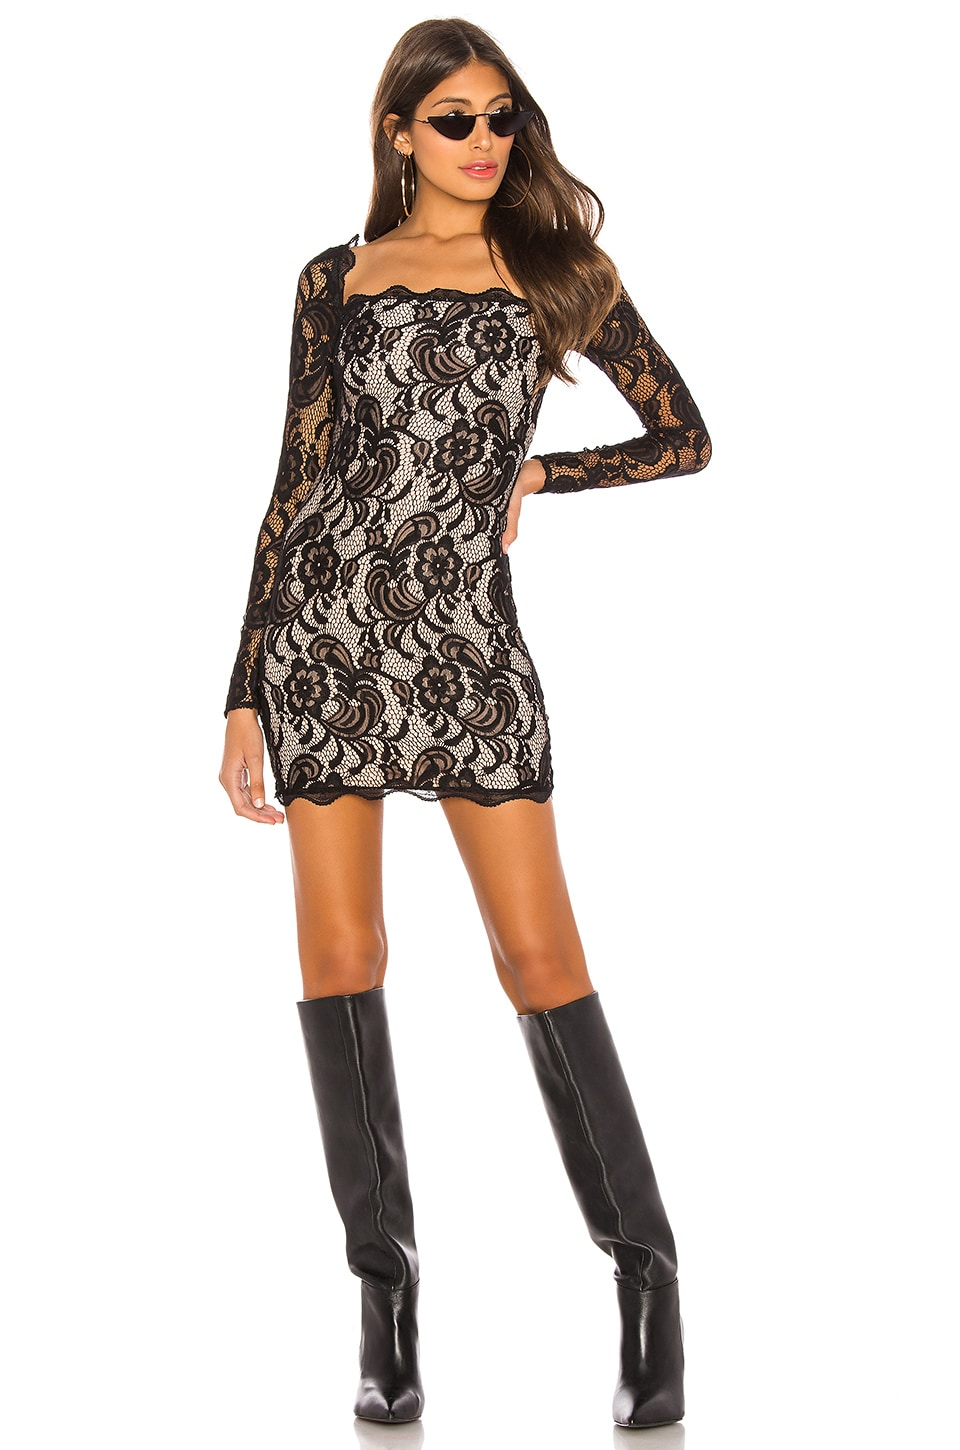 h:ours Delilah Mini Dress in Black